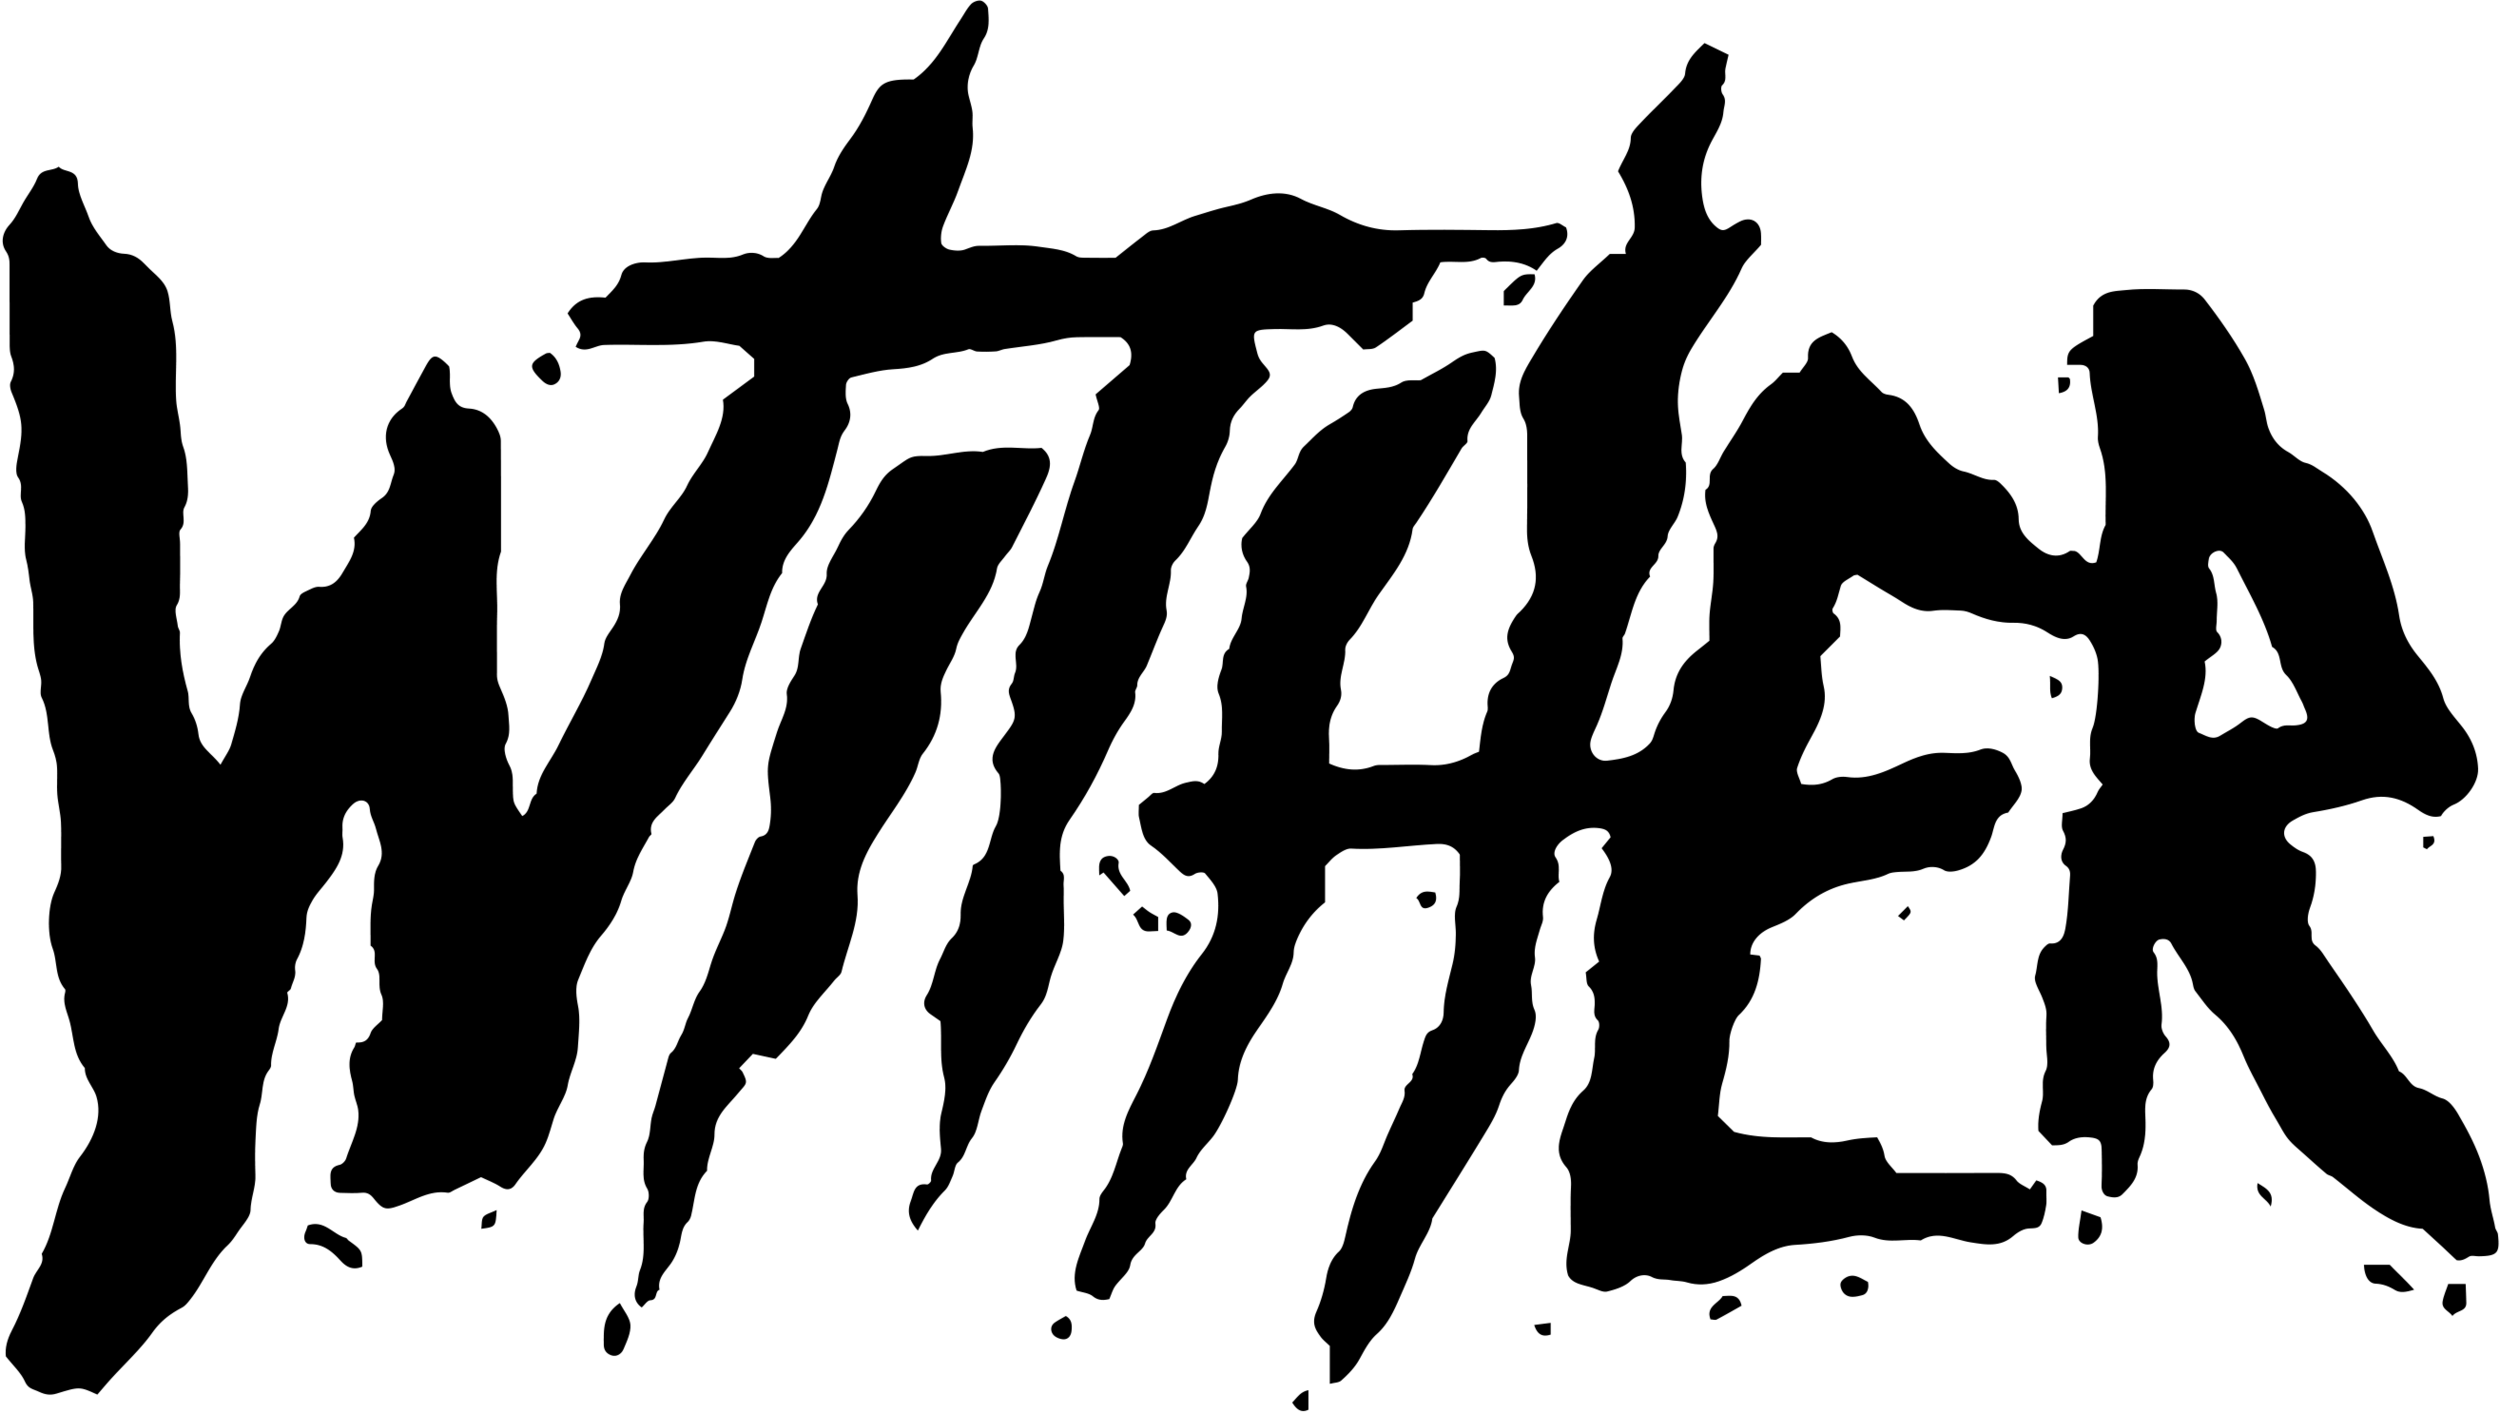 WITHER-LOGO-VECTOR-1-BLACK.png